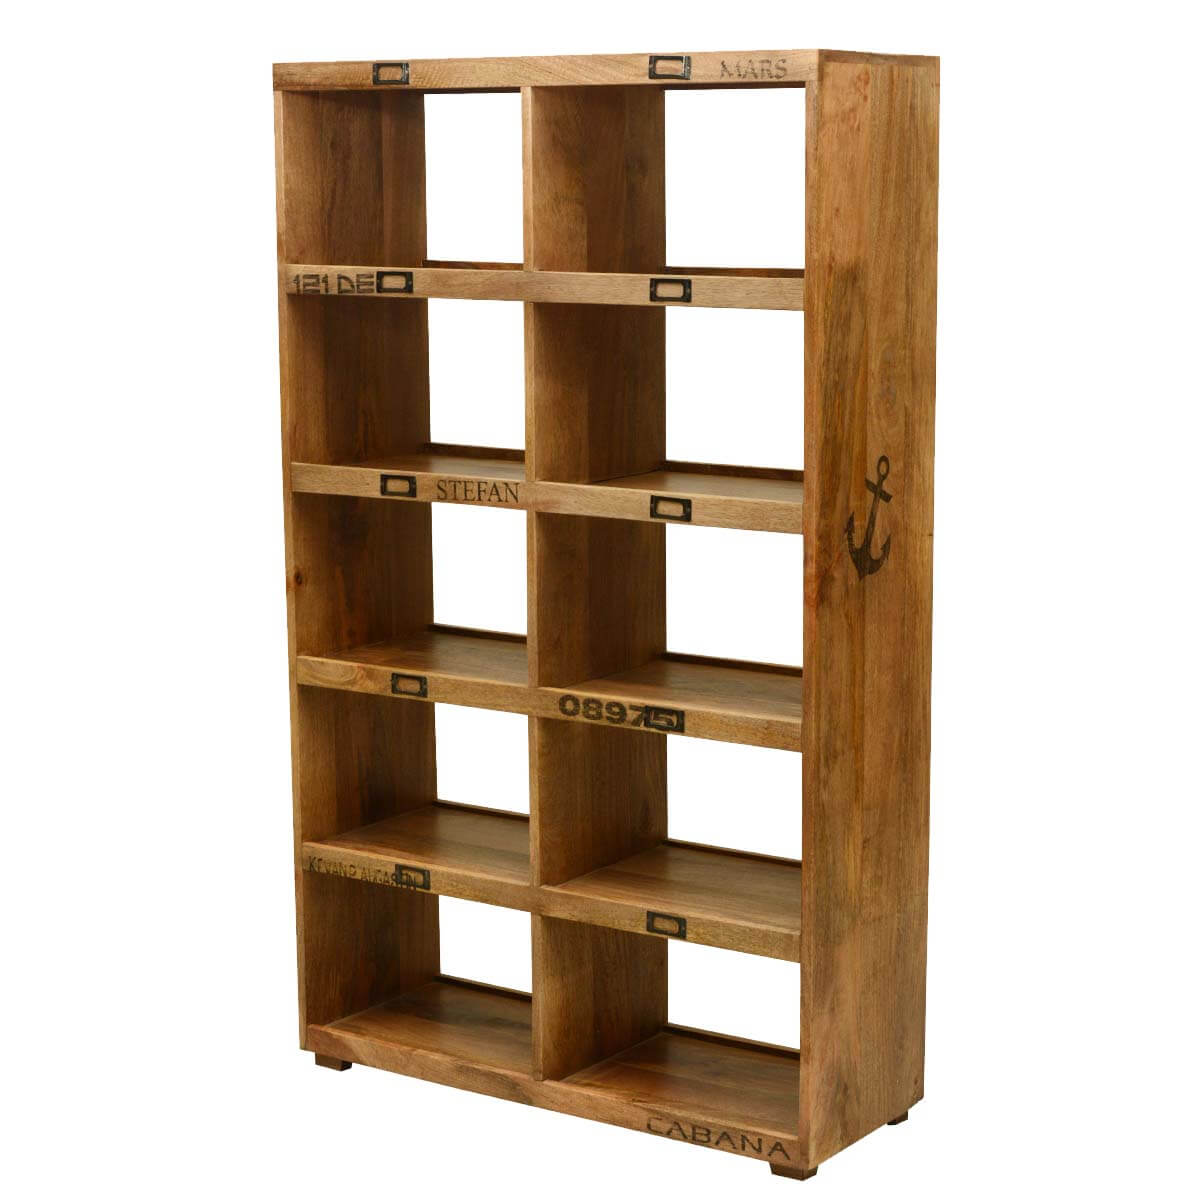 59 Open Back Bookcase Display Wall Unit